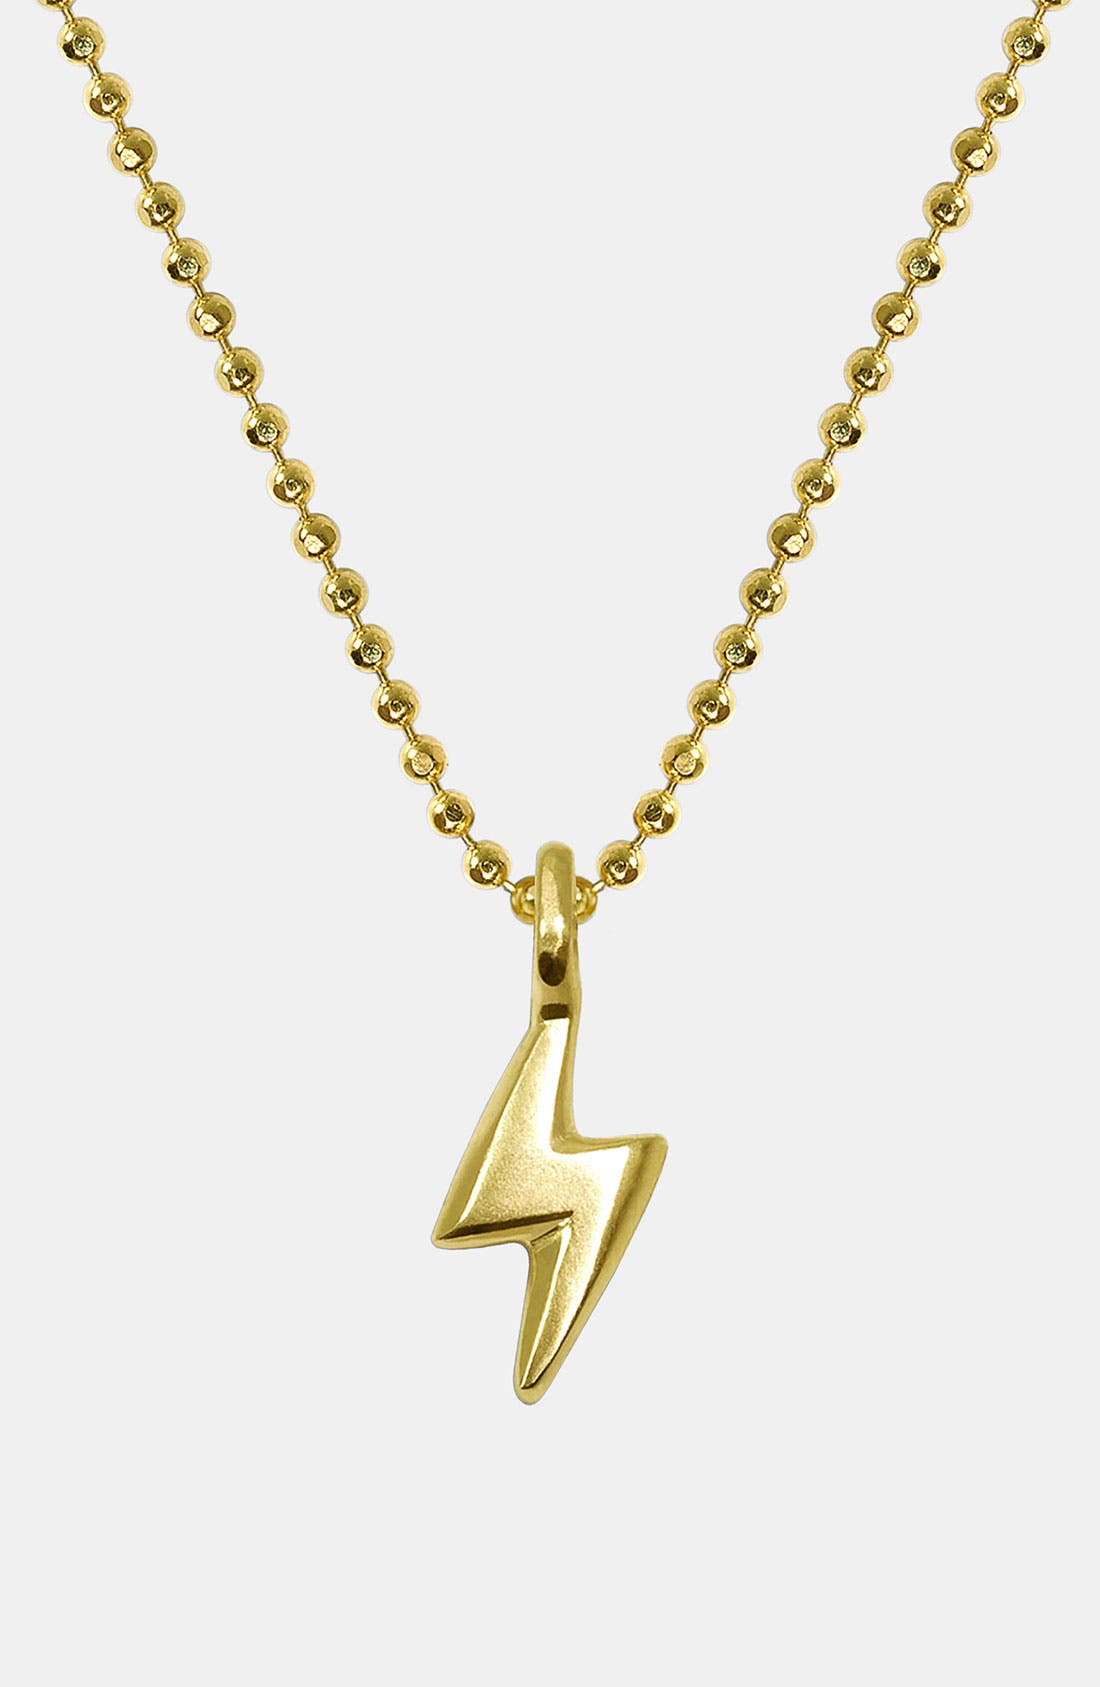 Alternate Image 1 Selected - Alex Woo 'Mini Lightening Bolt' 14k Gold Pendant Necklace